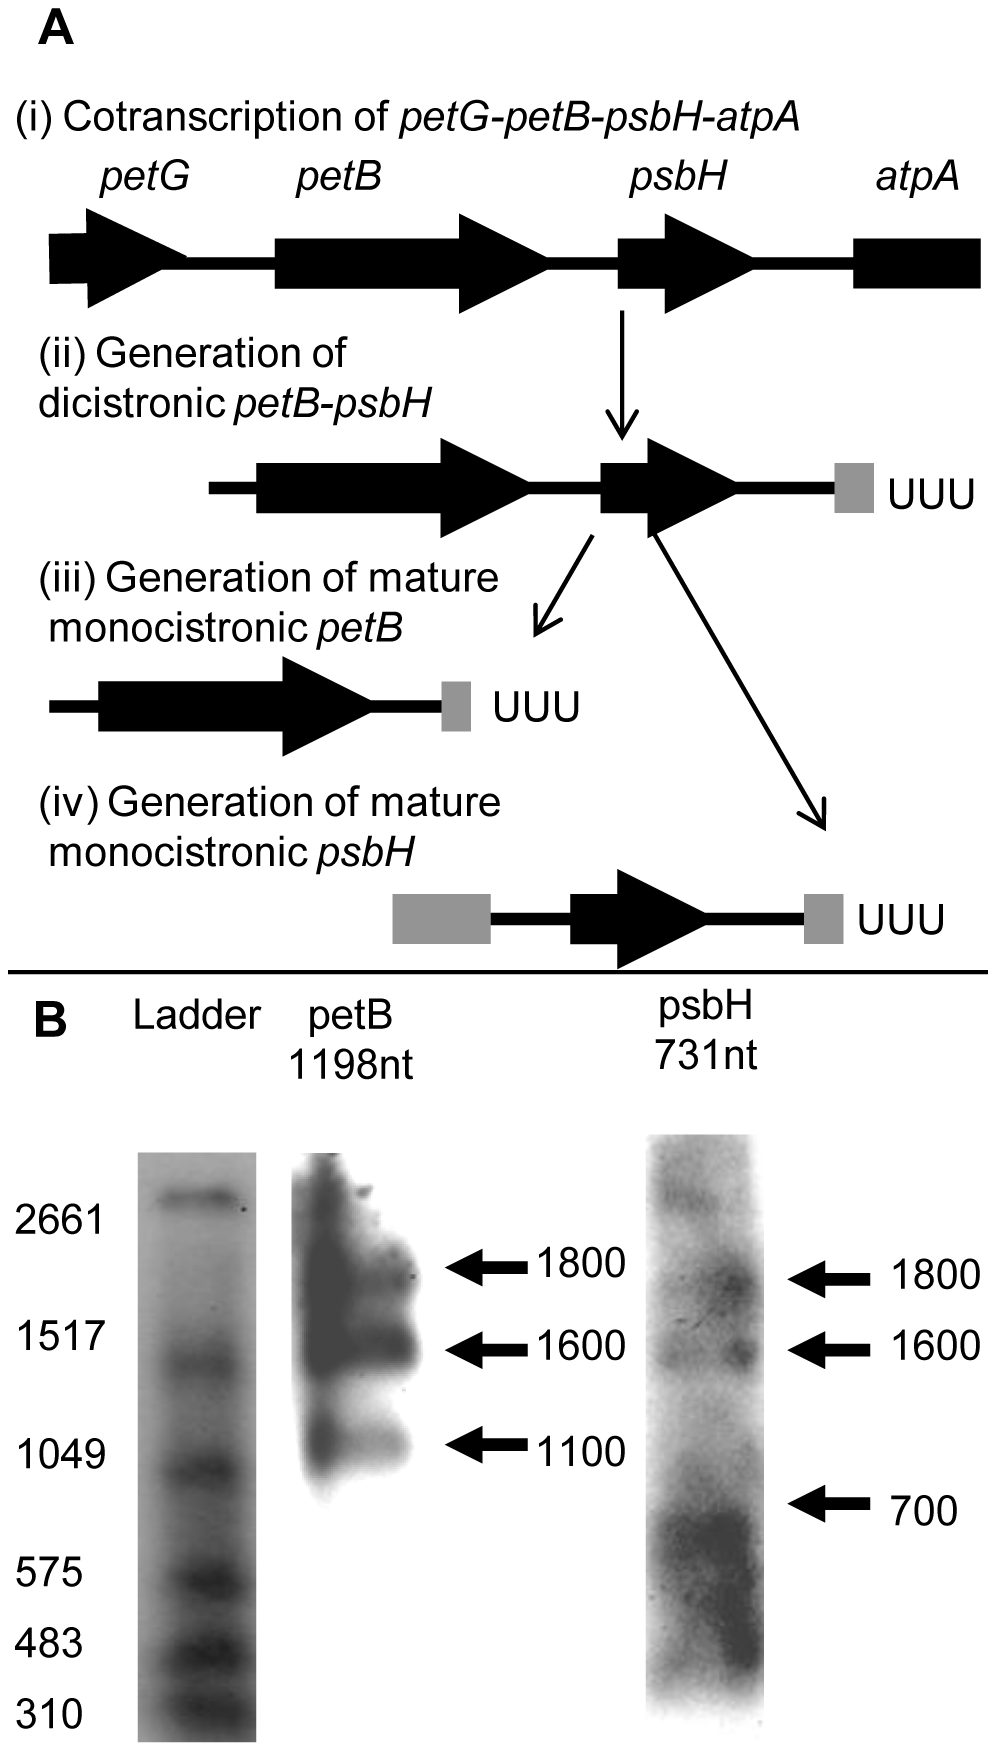 Processing of <i>Chromera velia</i> petB and psbH transcripts.